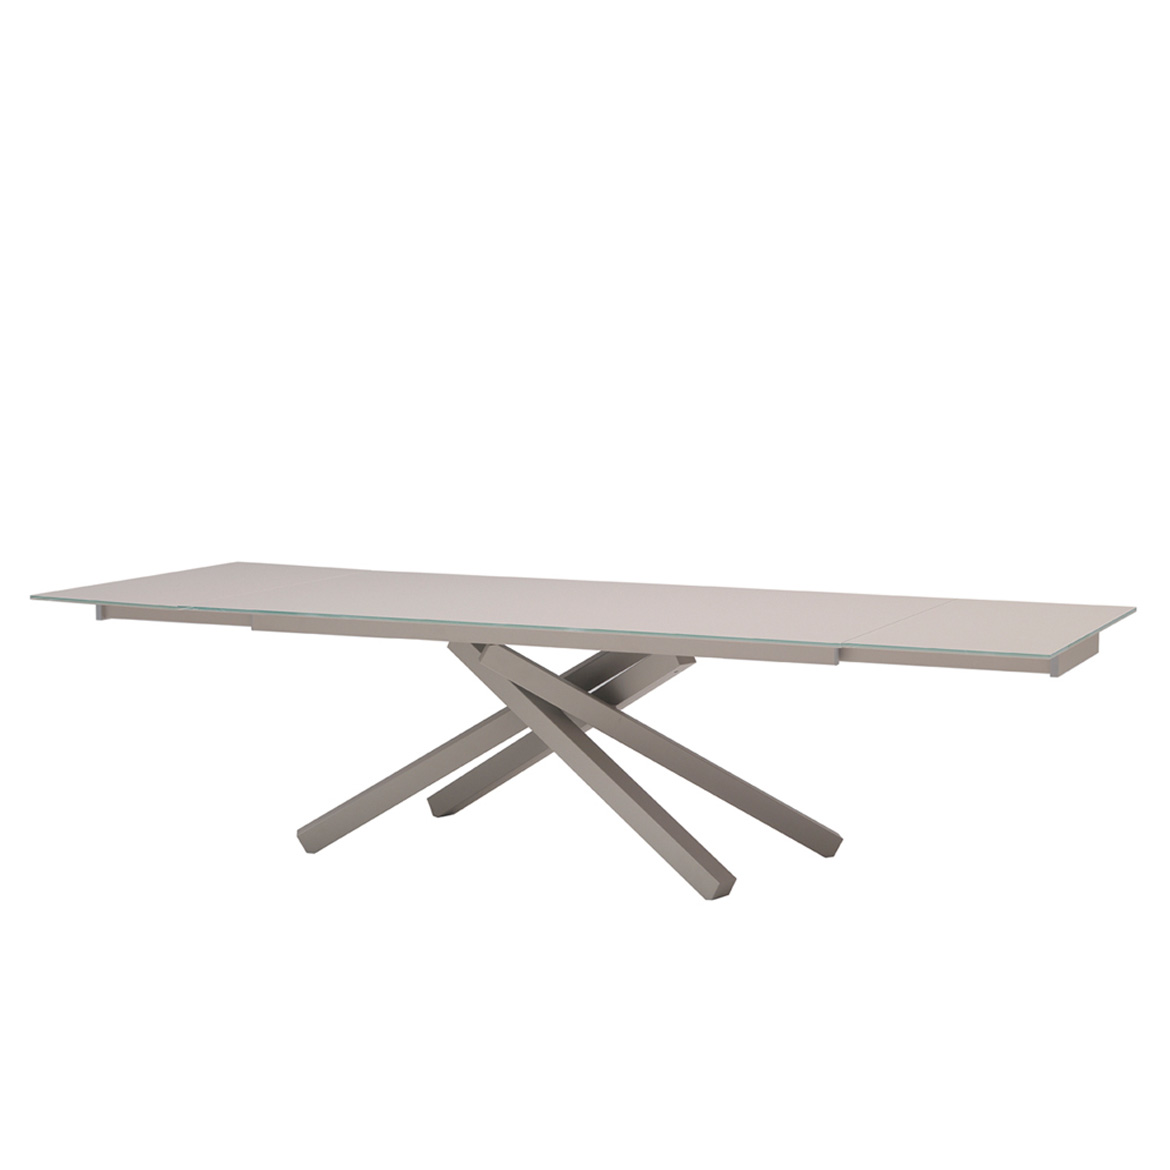 Extendable dining table. Avaliable with glass, creamic or wooden top. Base is powder coated metal.